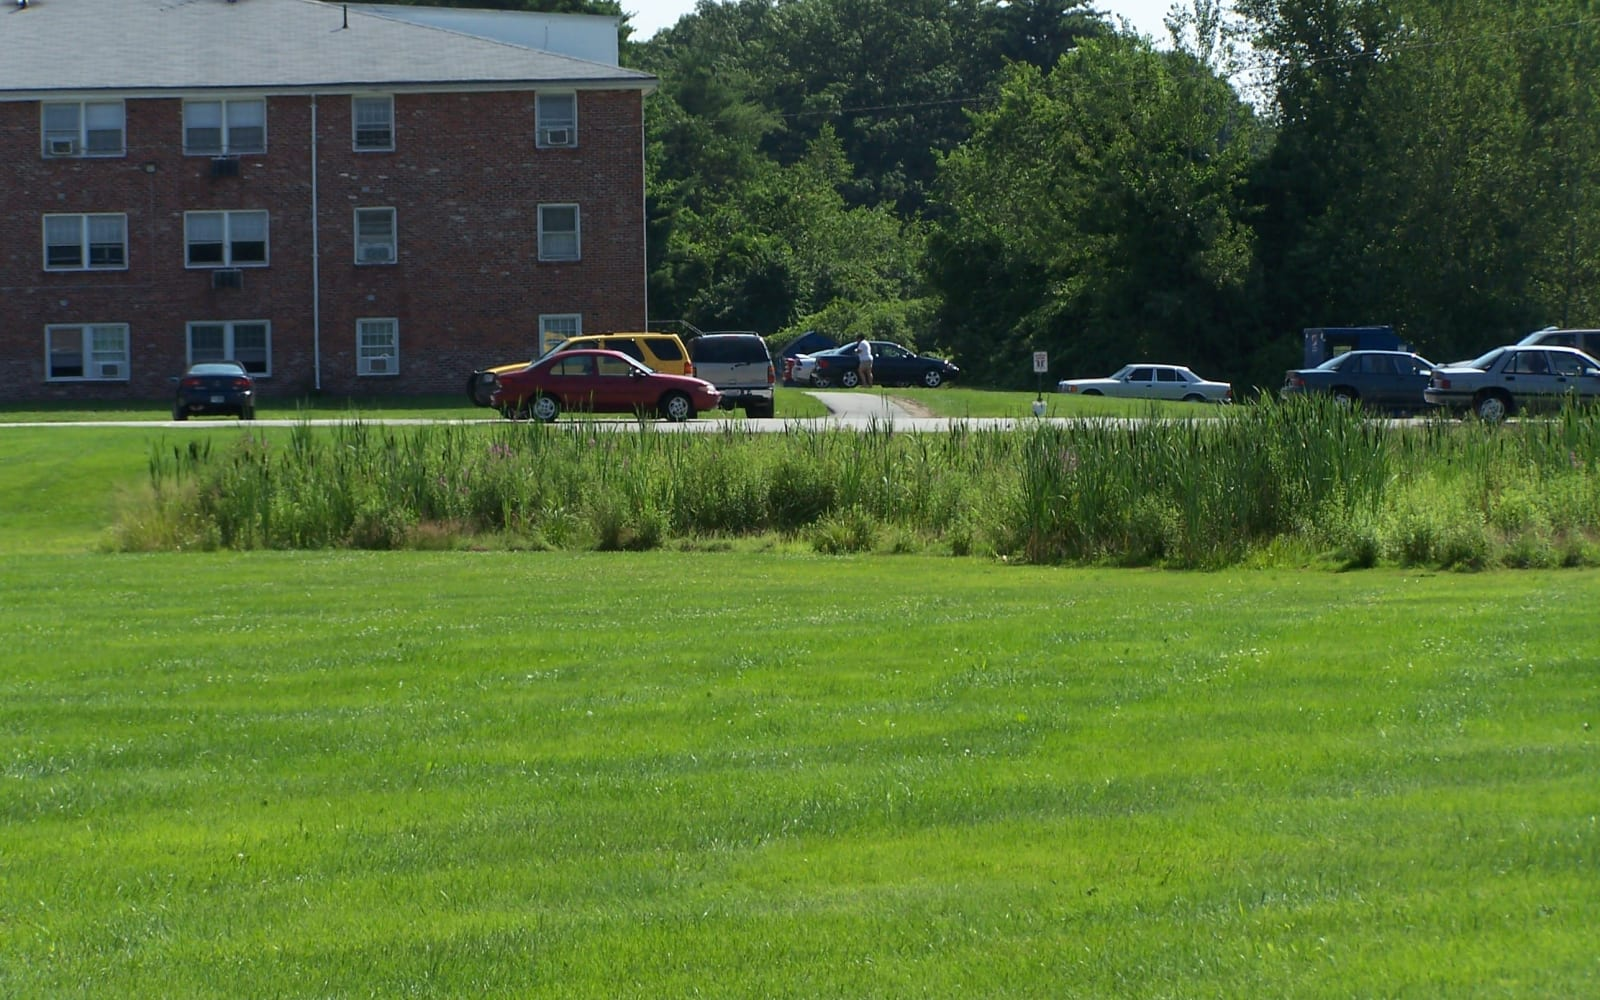 Enjoy well-maintained green grass outside of Westgate Arms Apartments in Salem, New Hampshire